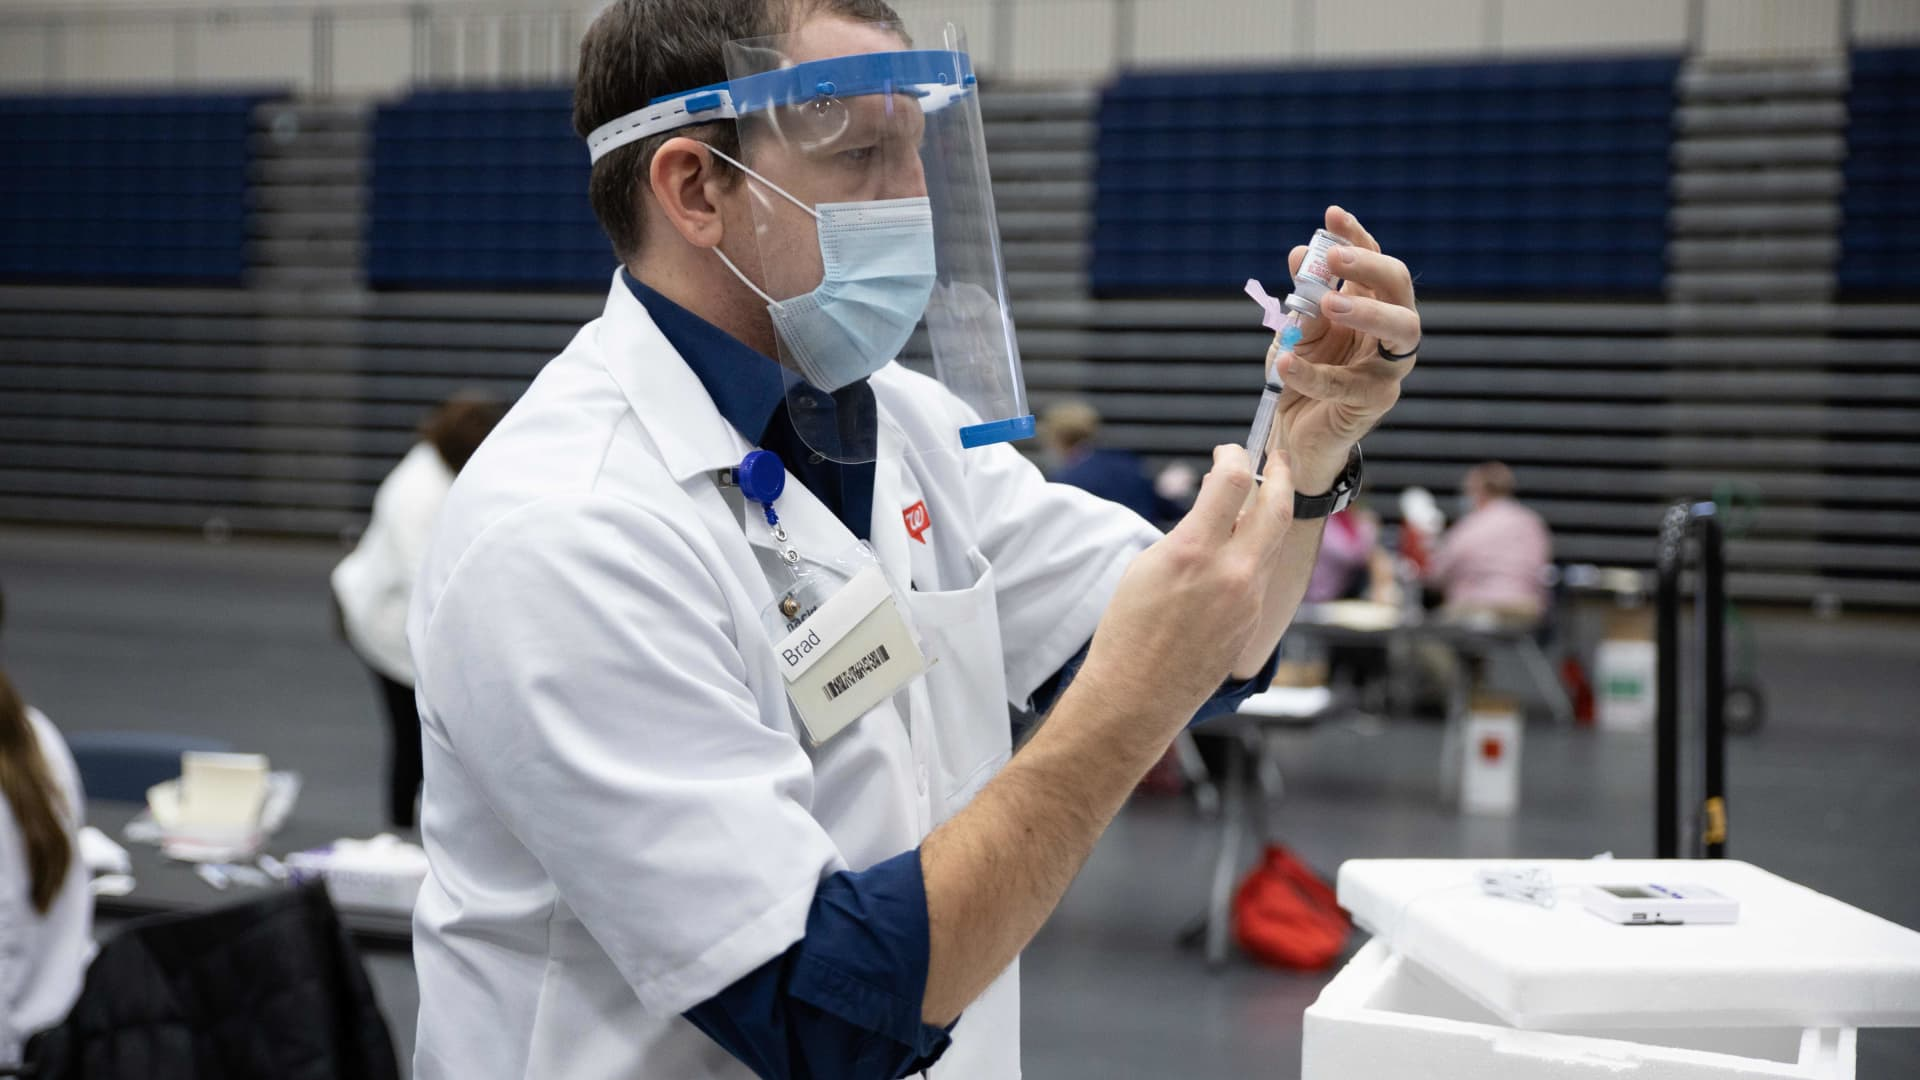 Walgreens staff prepare vaccines for Educational Staff at Kettering City Schools to receive the Covid-19 vaccine as a part of Ohio's Phase 1B vaccine distribution in Dayton, Ohio on February 10, 2021.